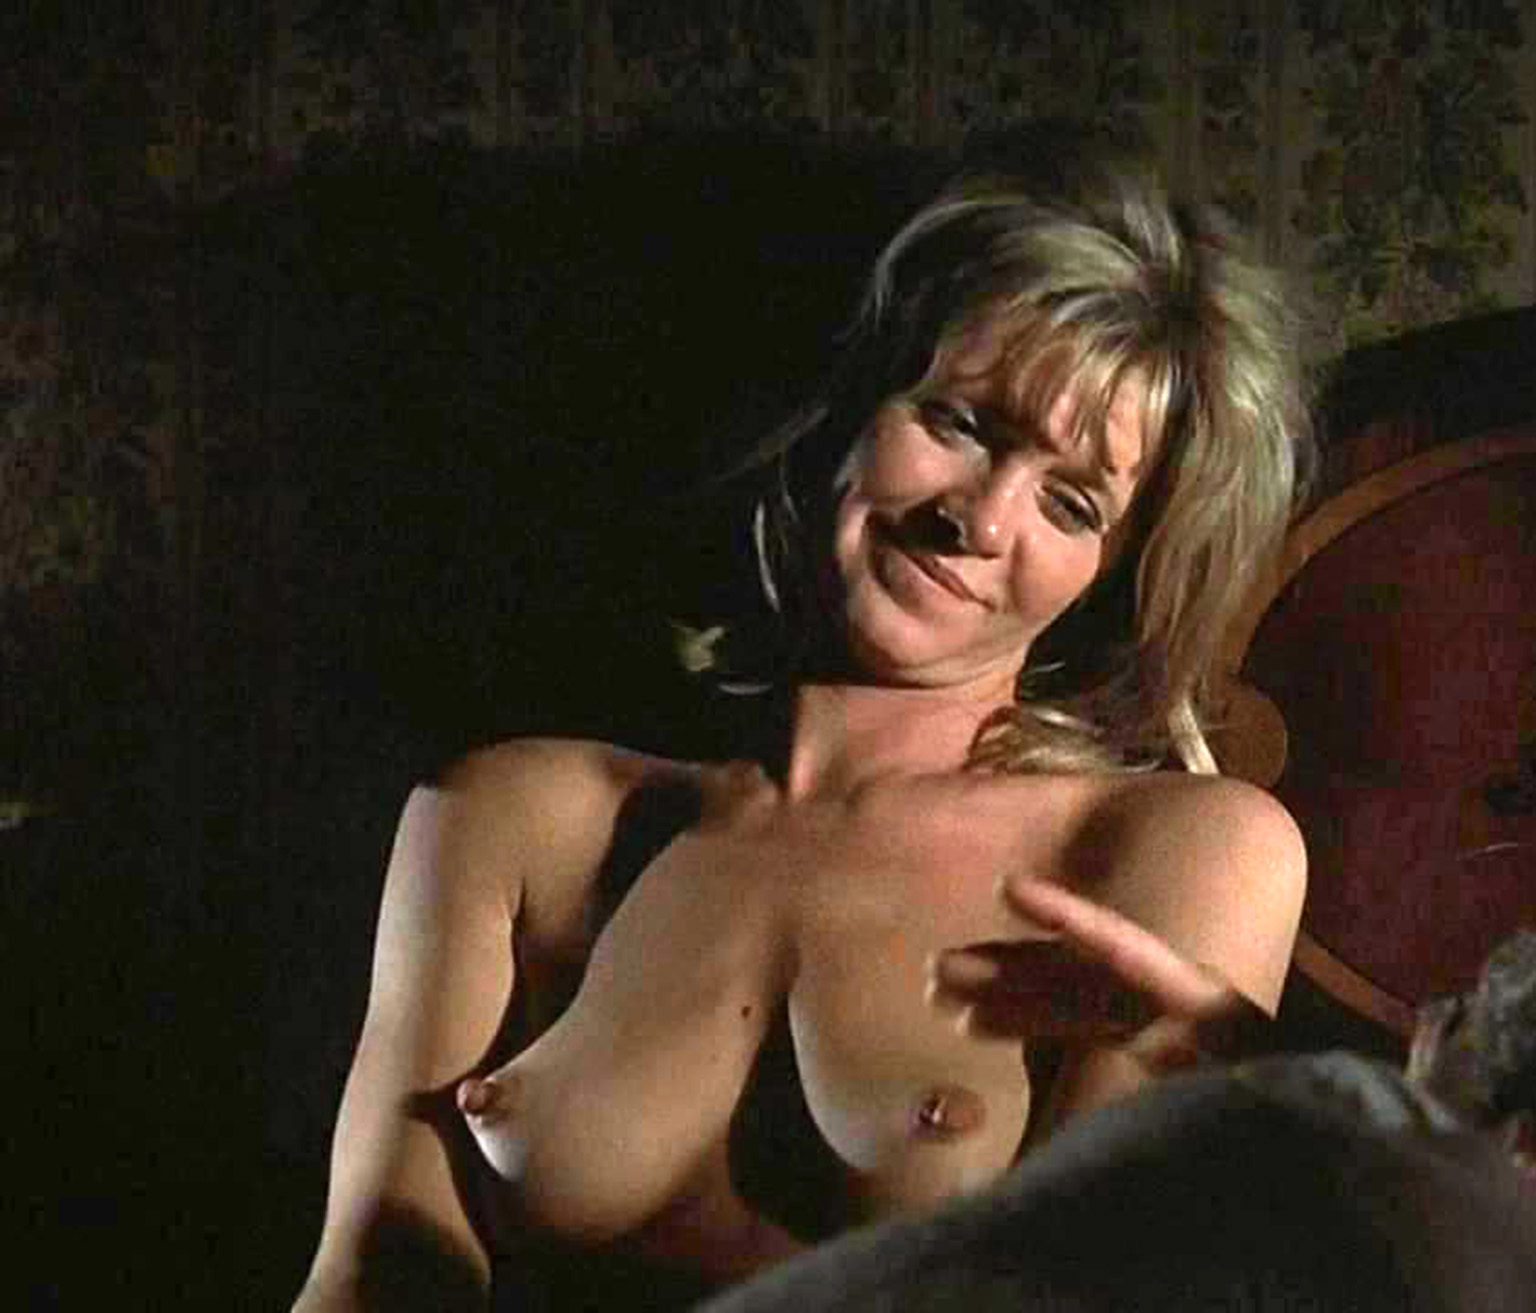 Teri garr nude scenes are not